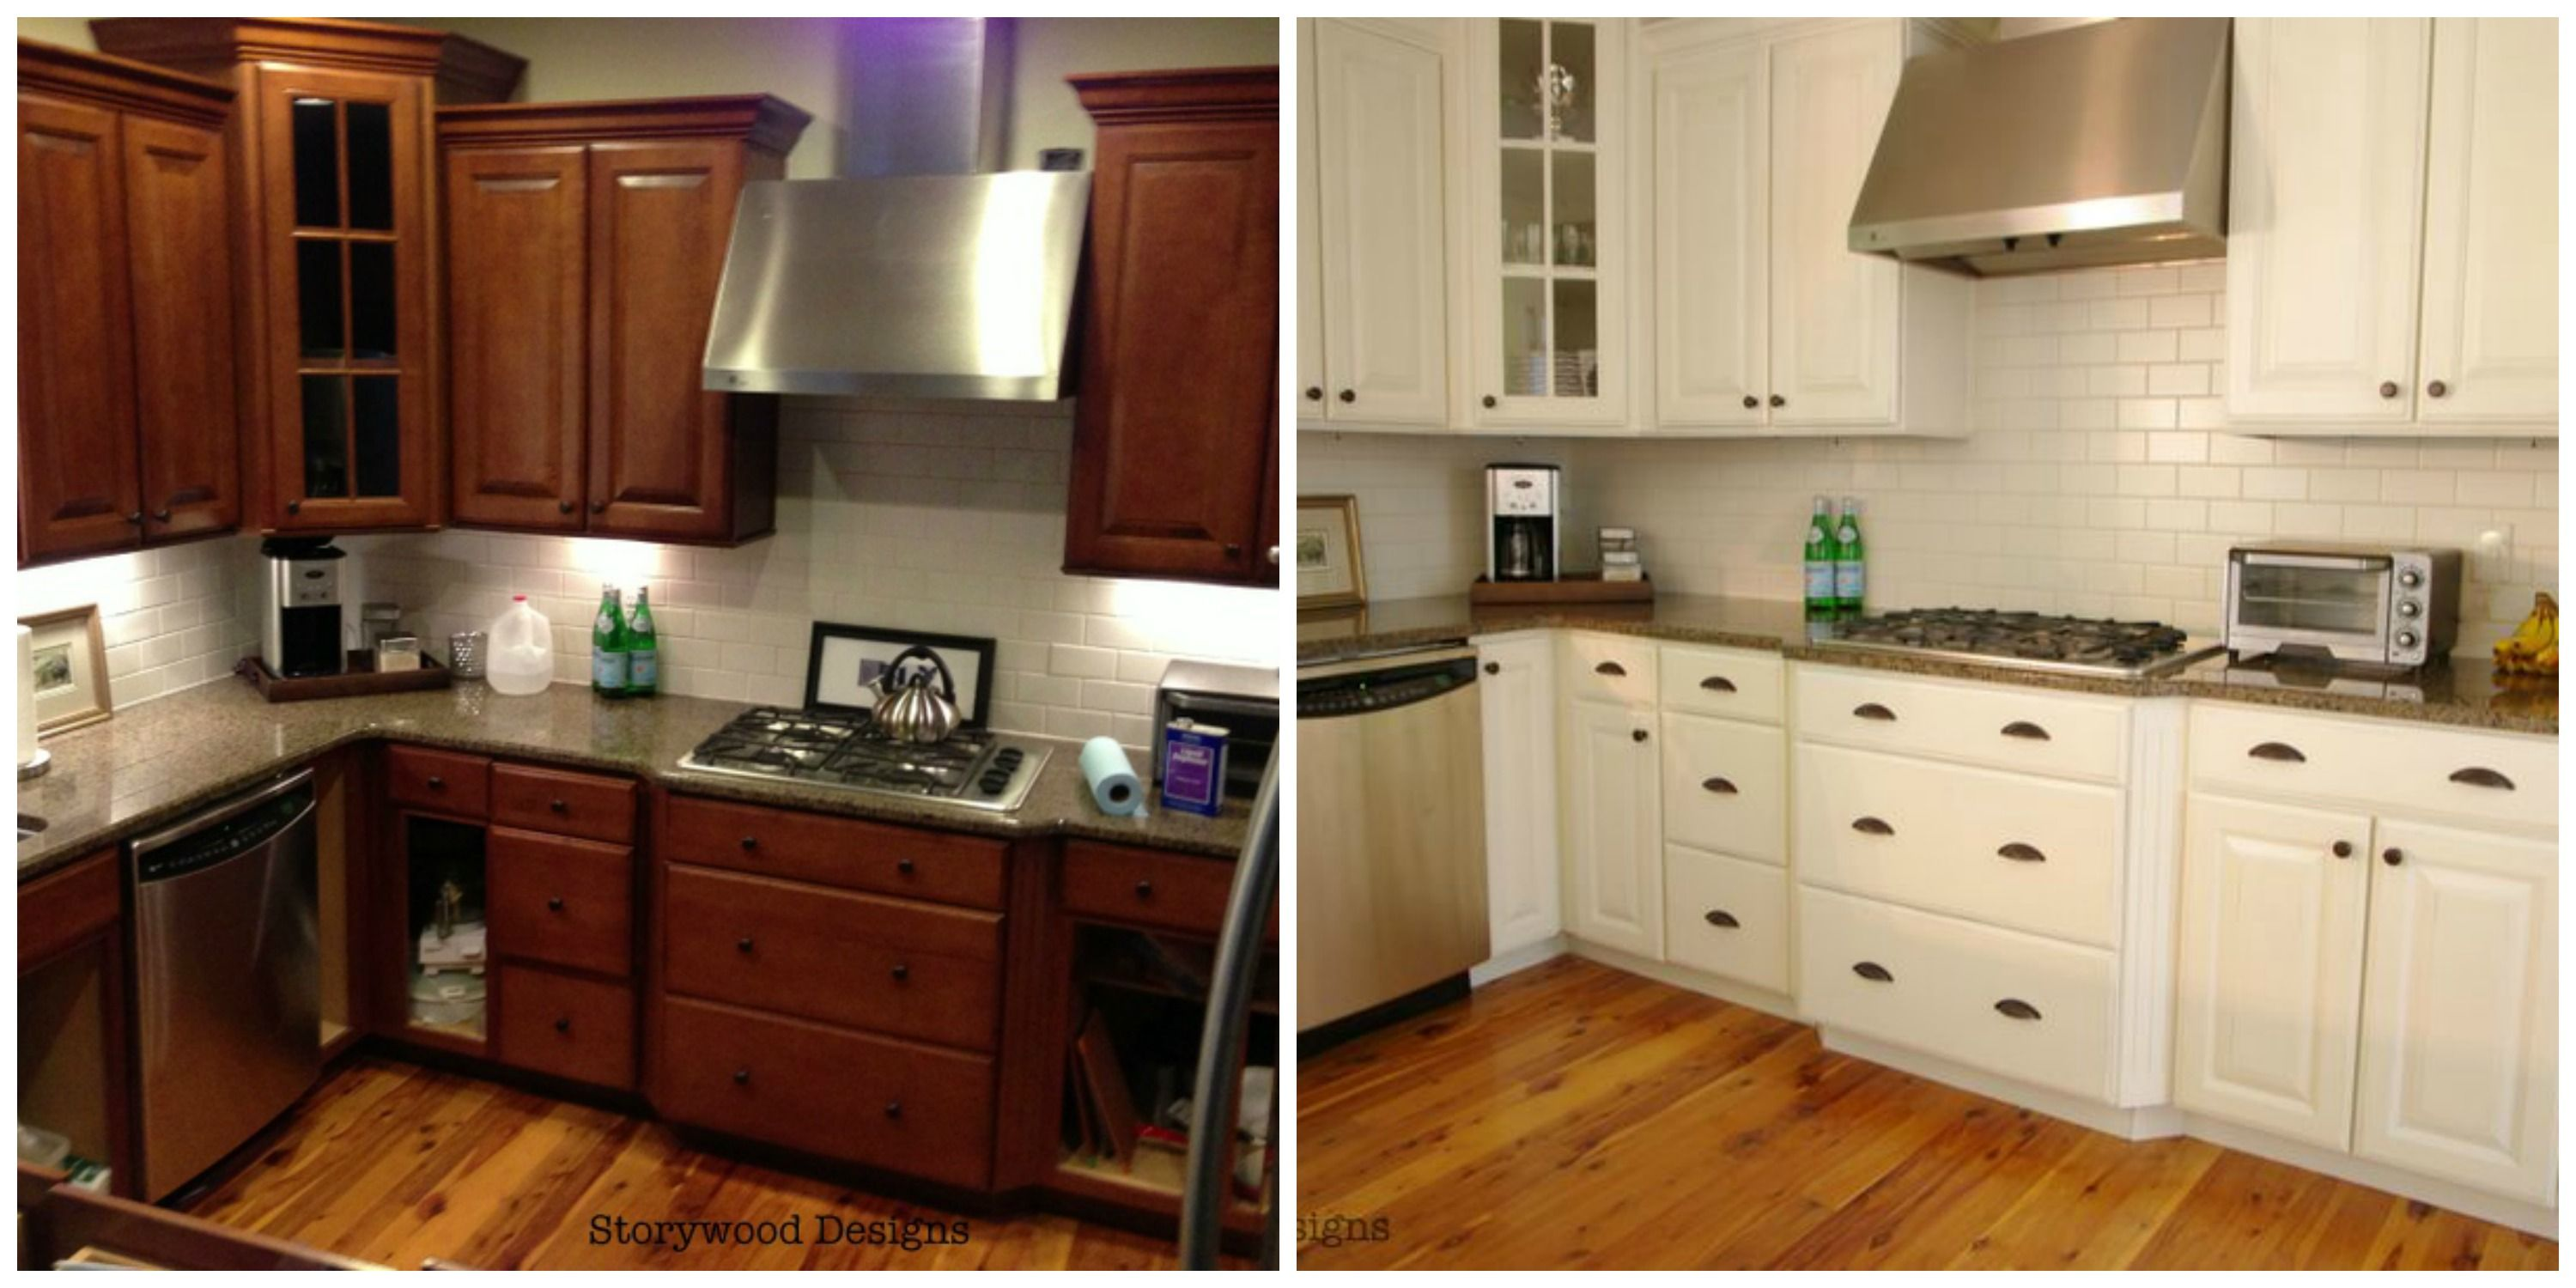 9 Reasons You Need To Paint Your Kitchen Cabinets Right